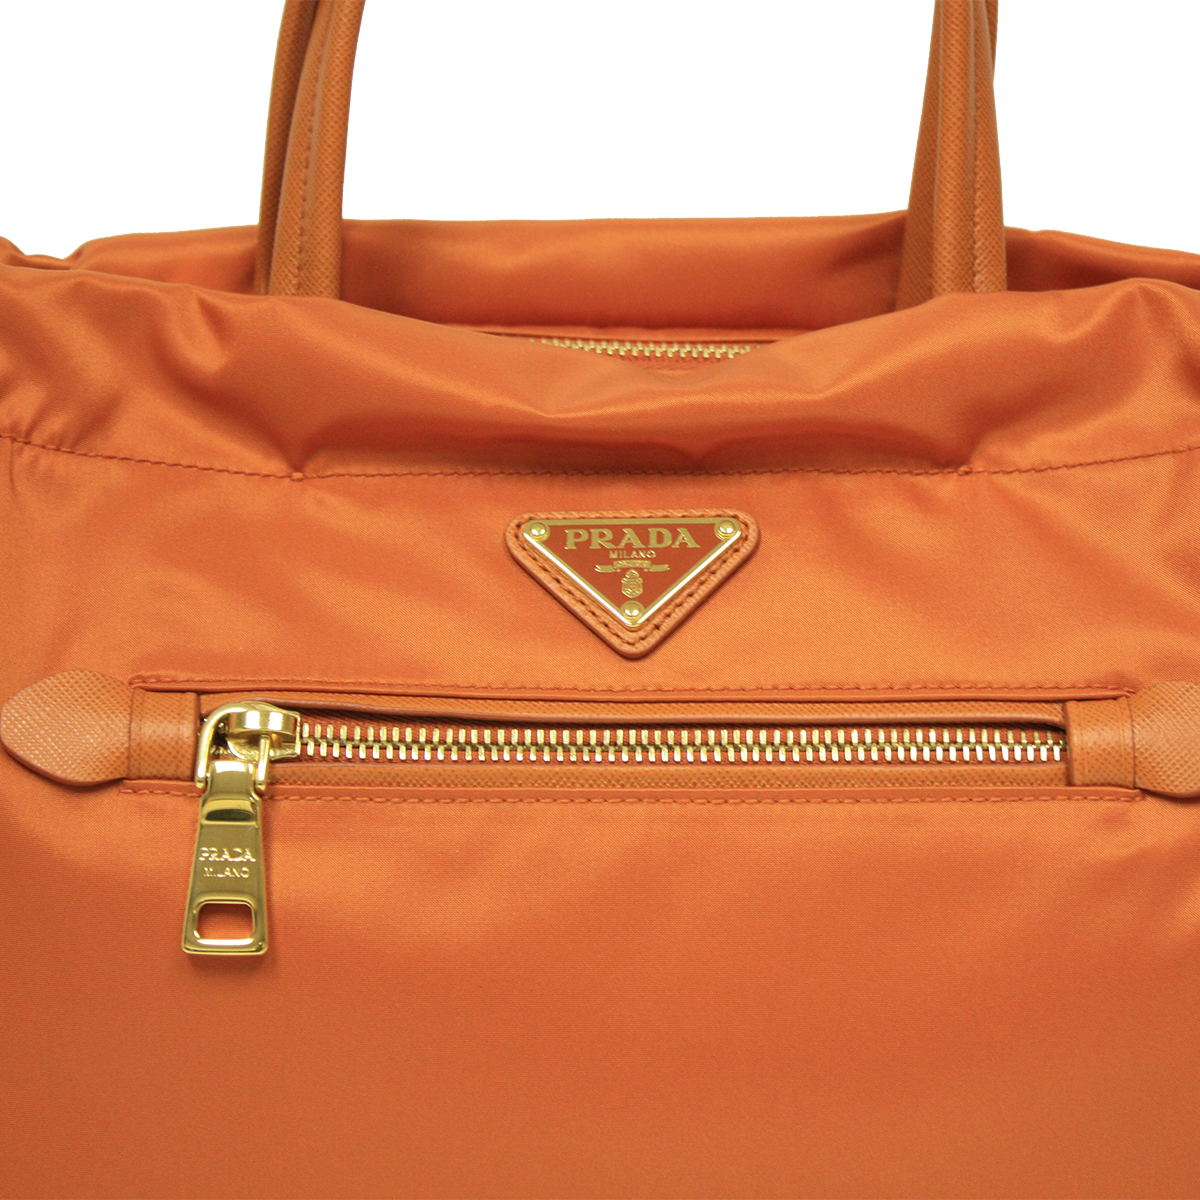 red prada handbag - Prada Papaya Orange Tessuto Saffian Leather Shopping Tote Bag ...